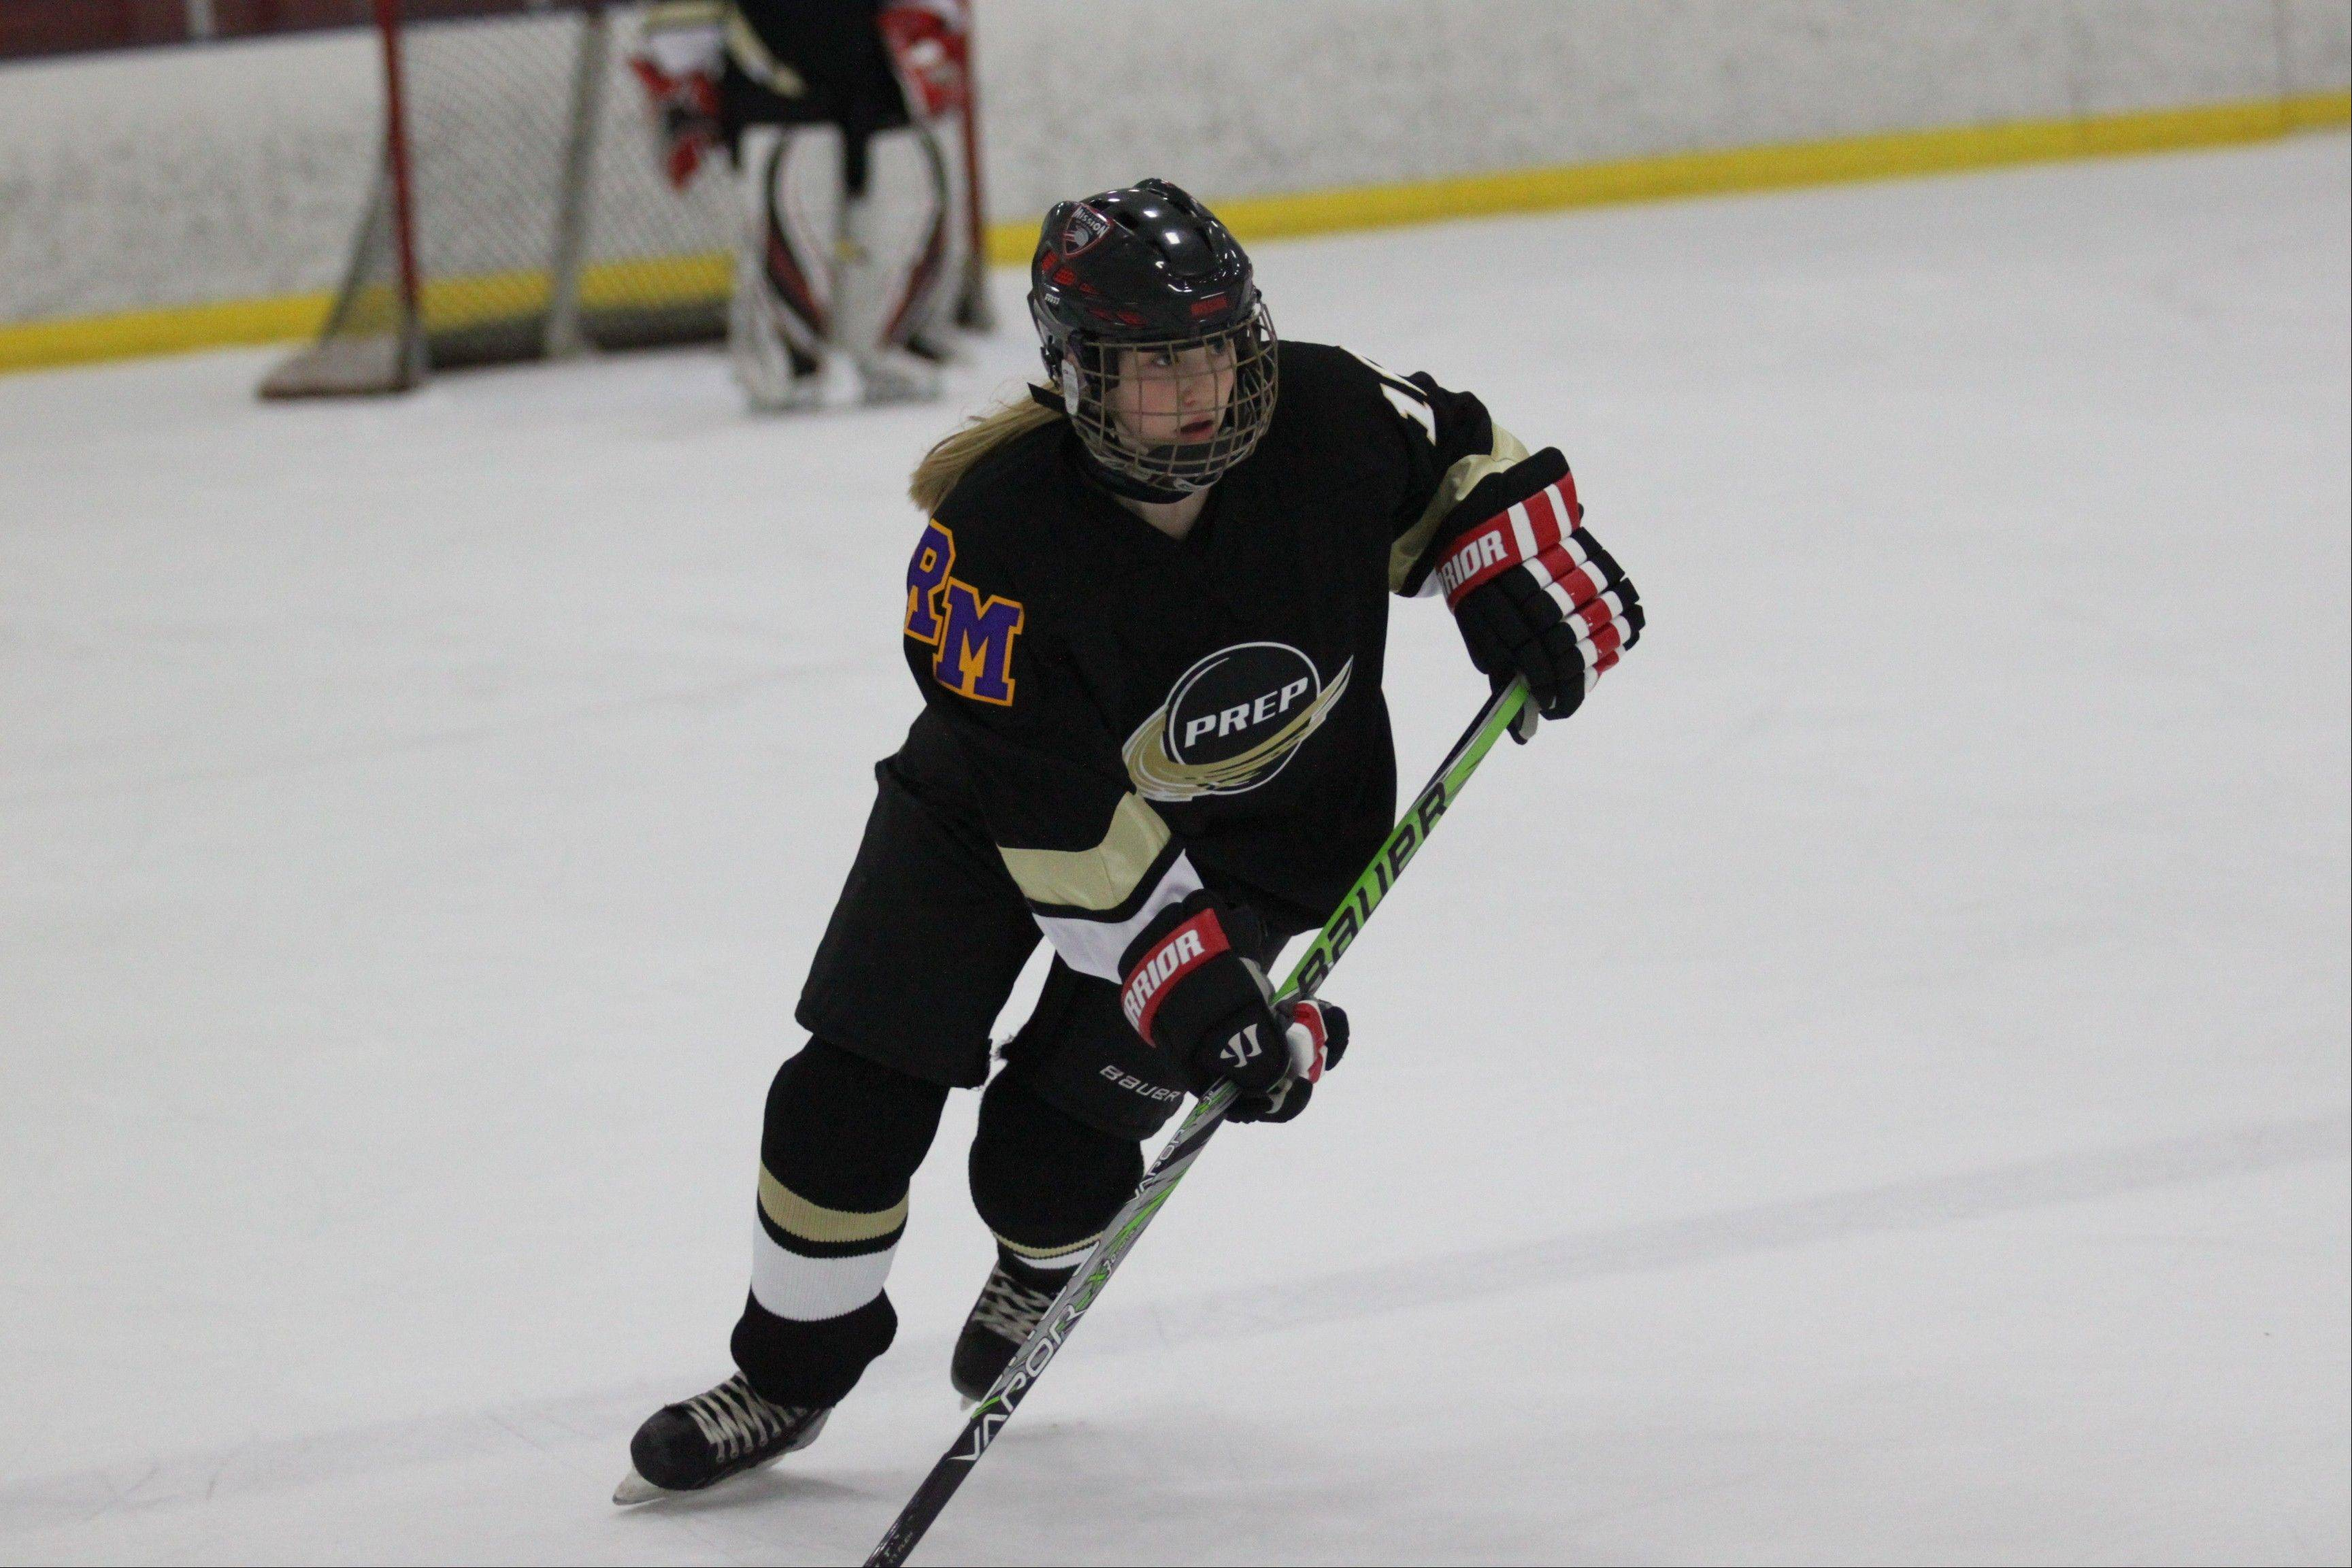 Dakota Golde is making her mark as a freshman defenseman on the PREP varsity boys hockey team.